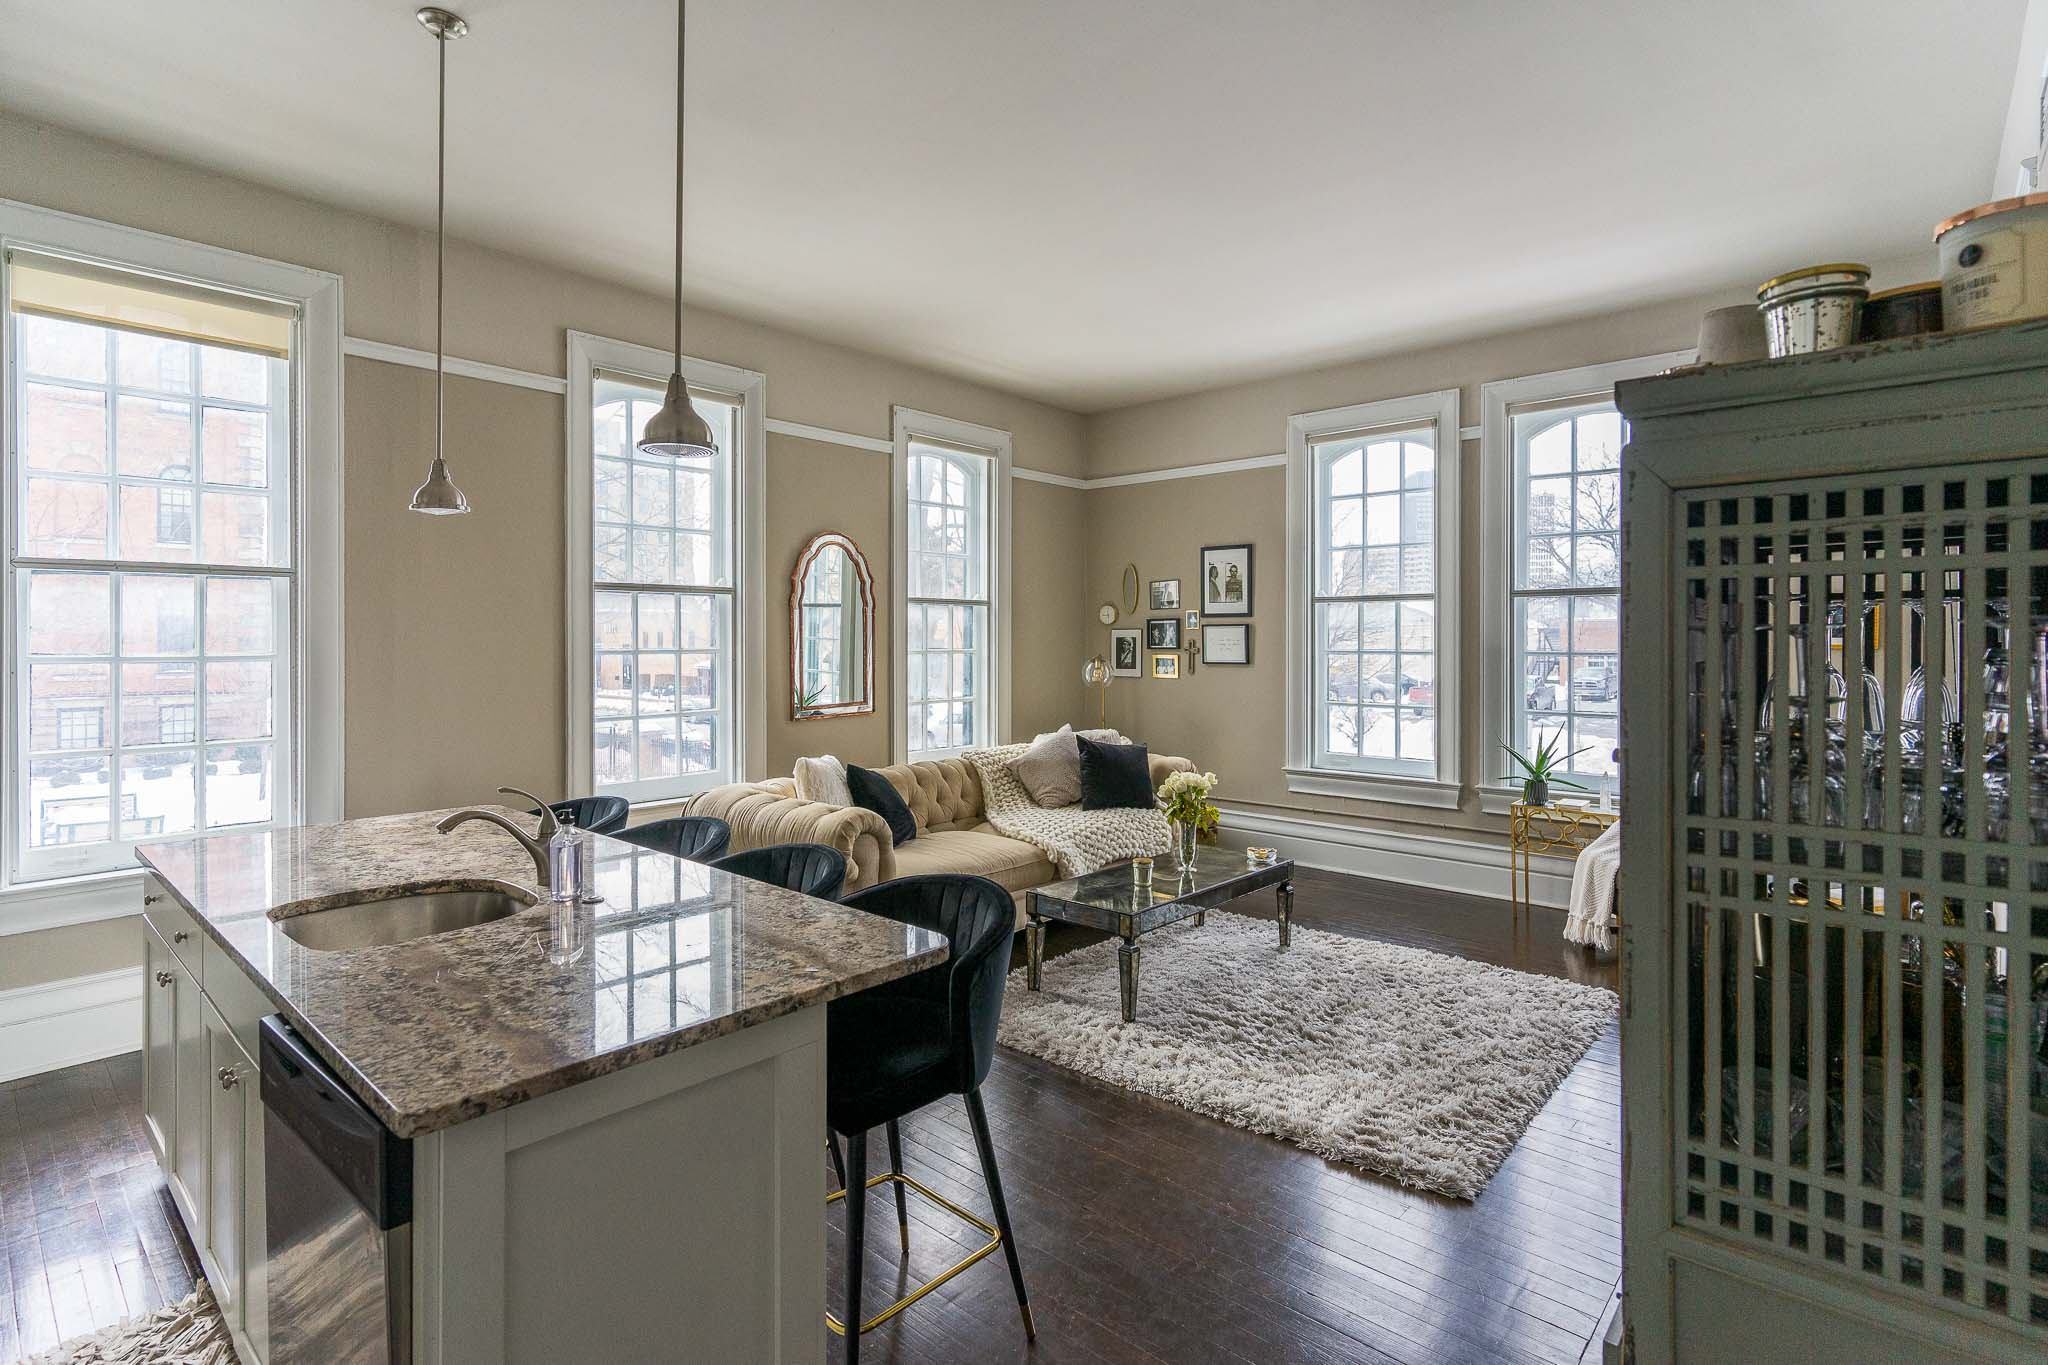 Open Floor Plans at the 300 Alexander Apartments in Rochester, New York